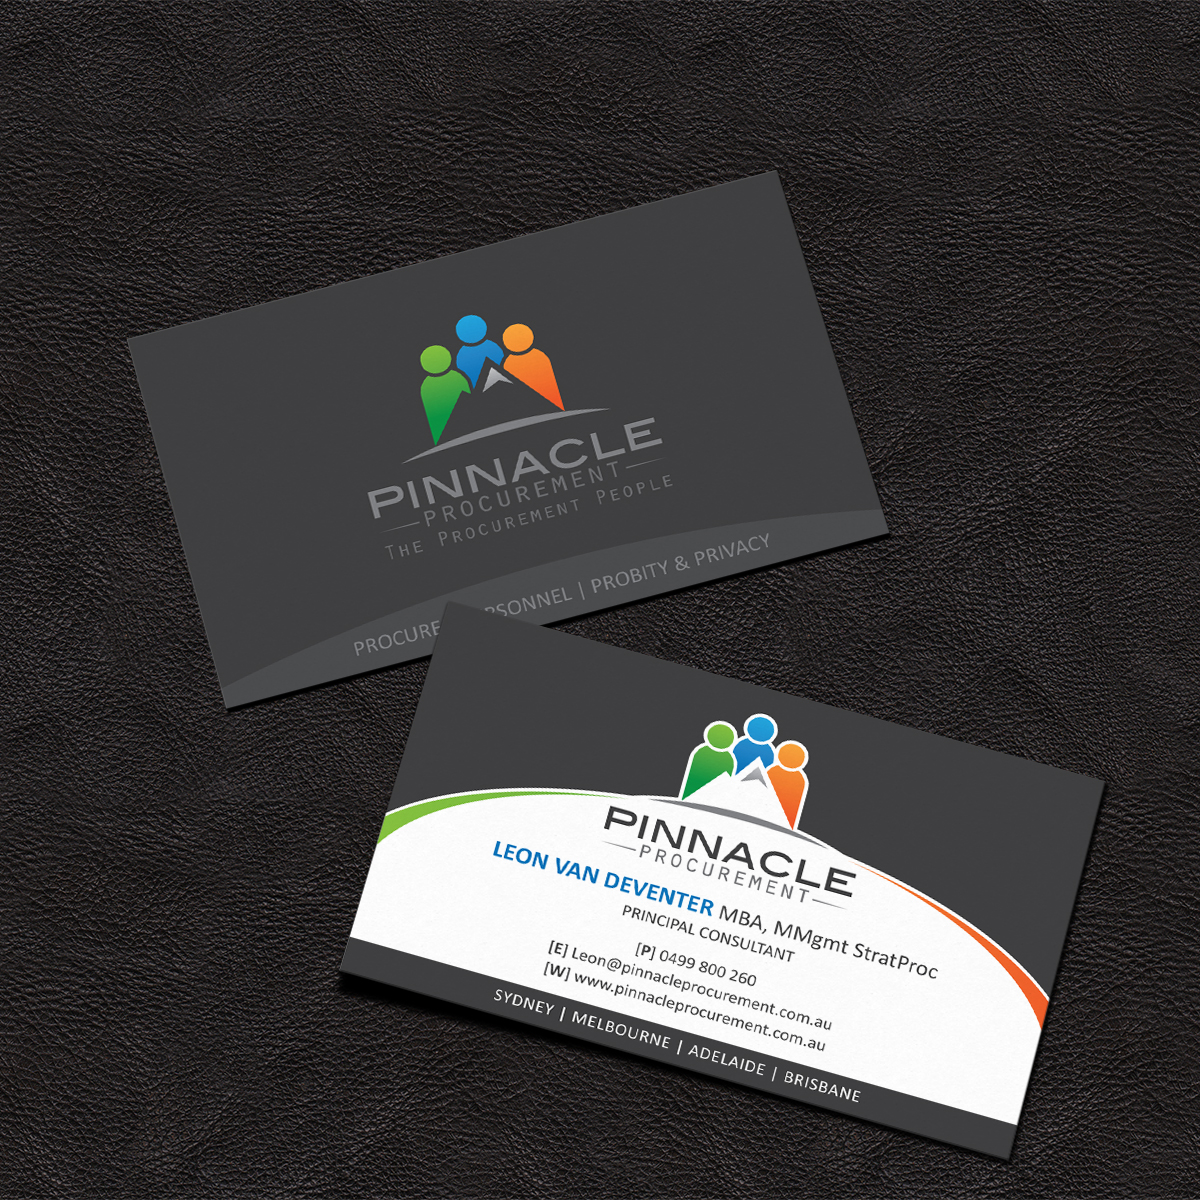 Professional modern consulting business card design for pinnacle business card design by grafactory for pinnacle procurement design 11180357 reheart Images